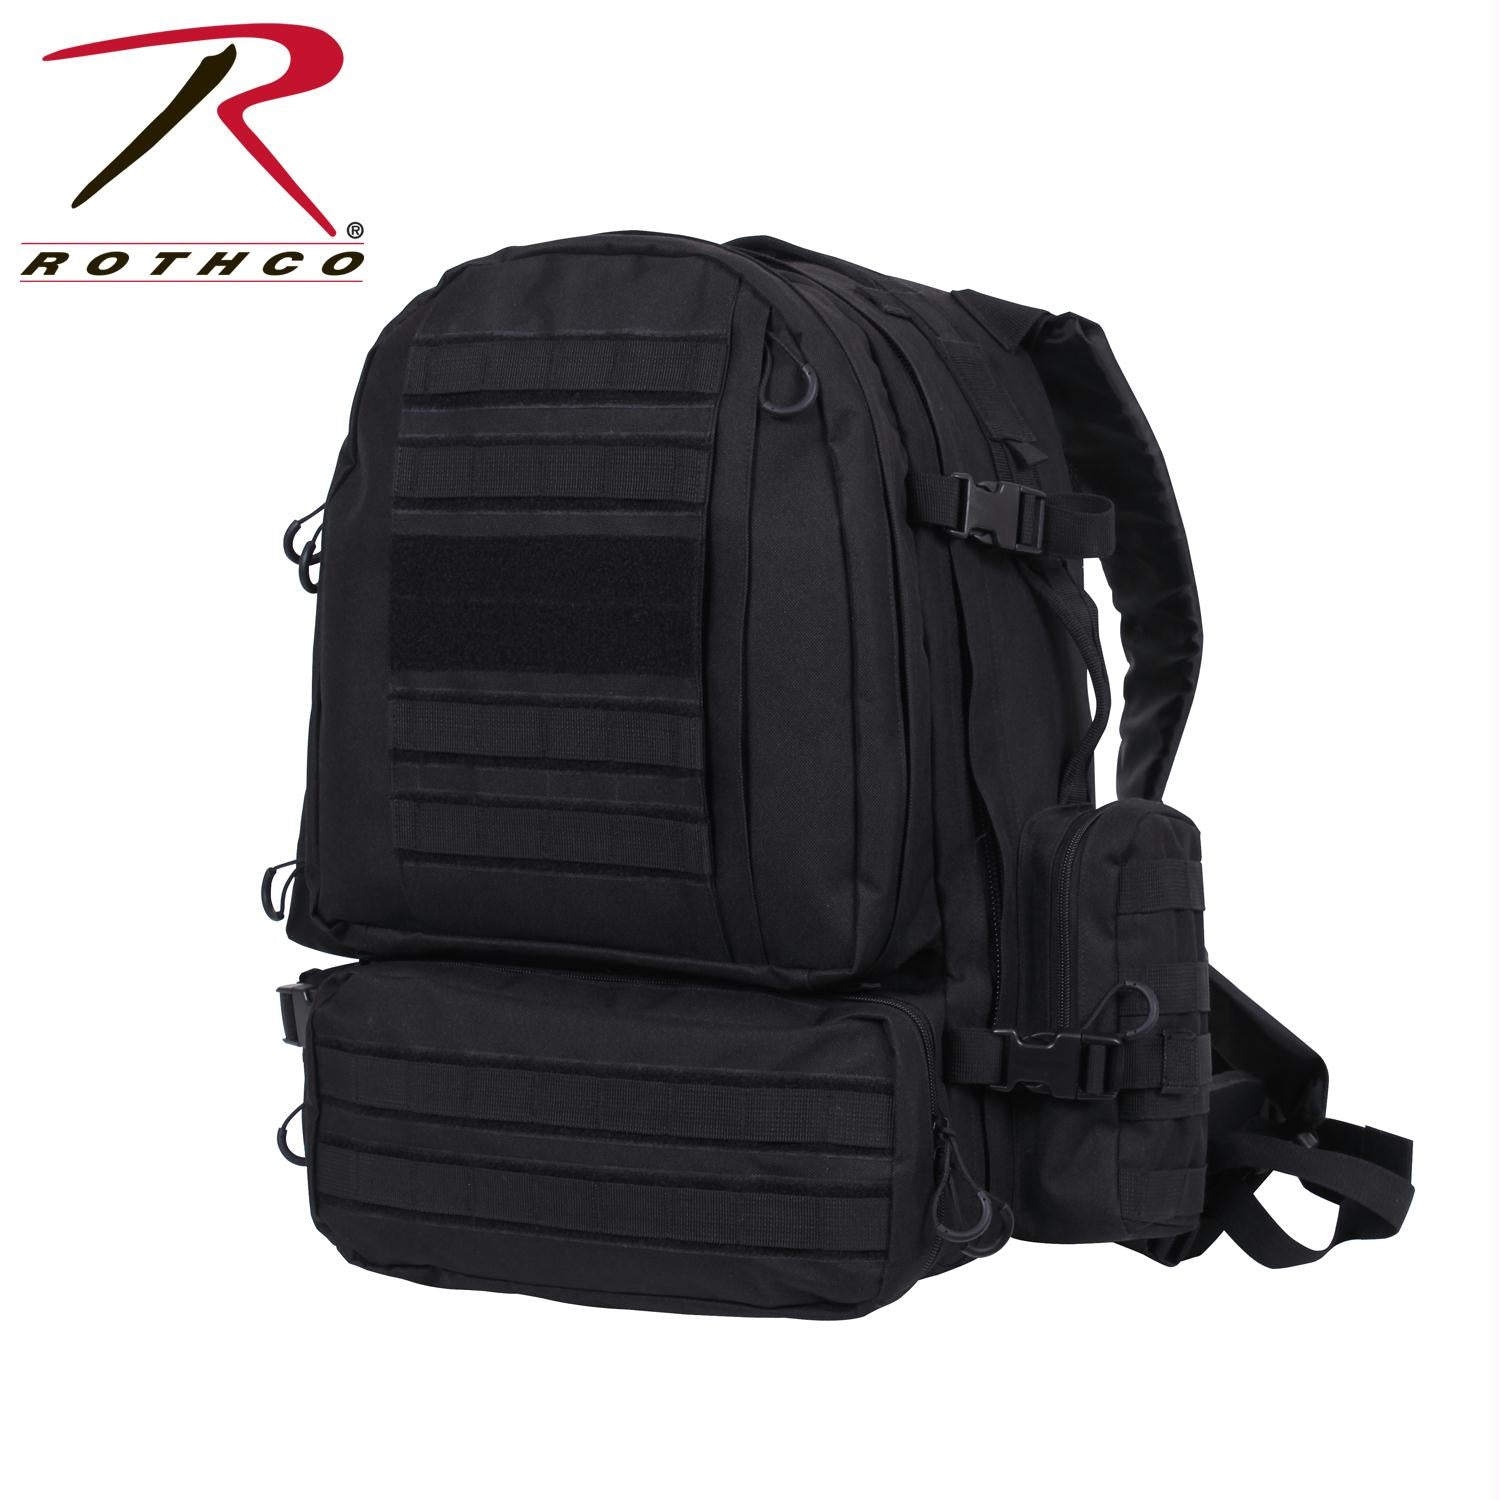 Rothco Tactical Extended Deployment Pack - Black